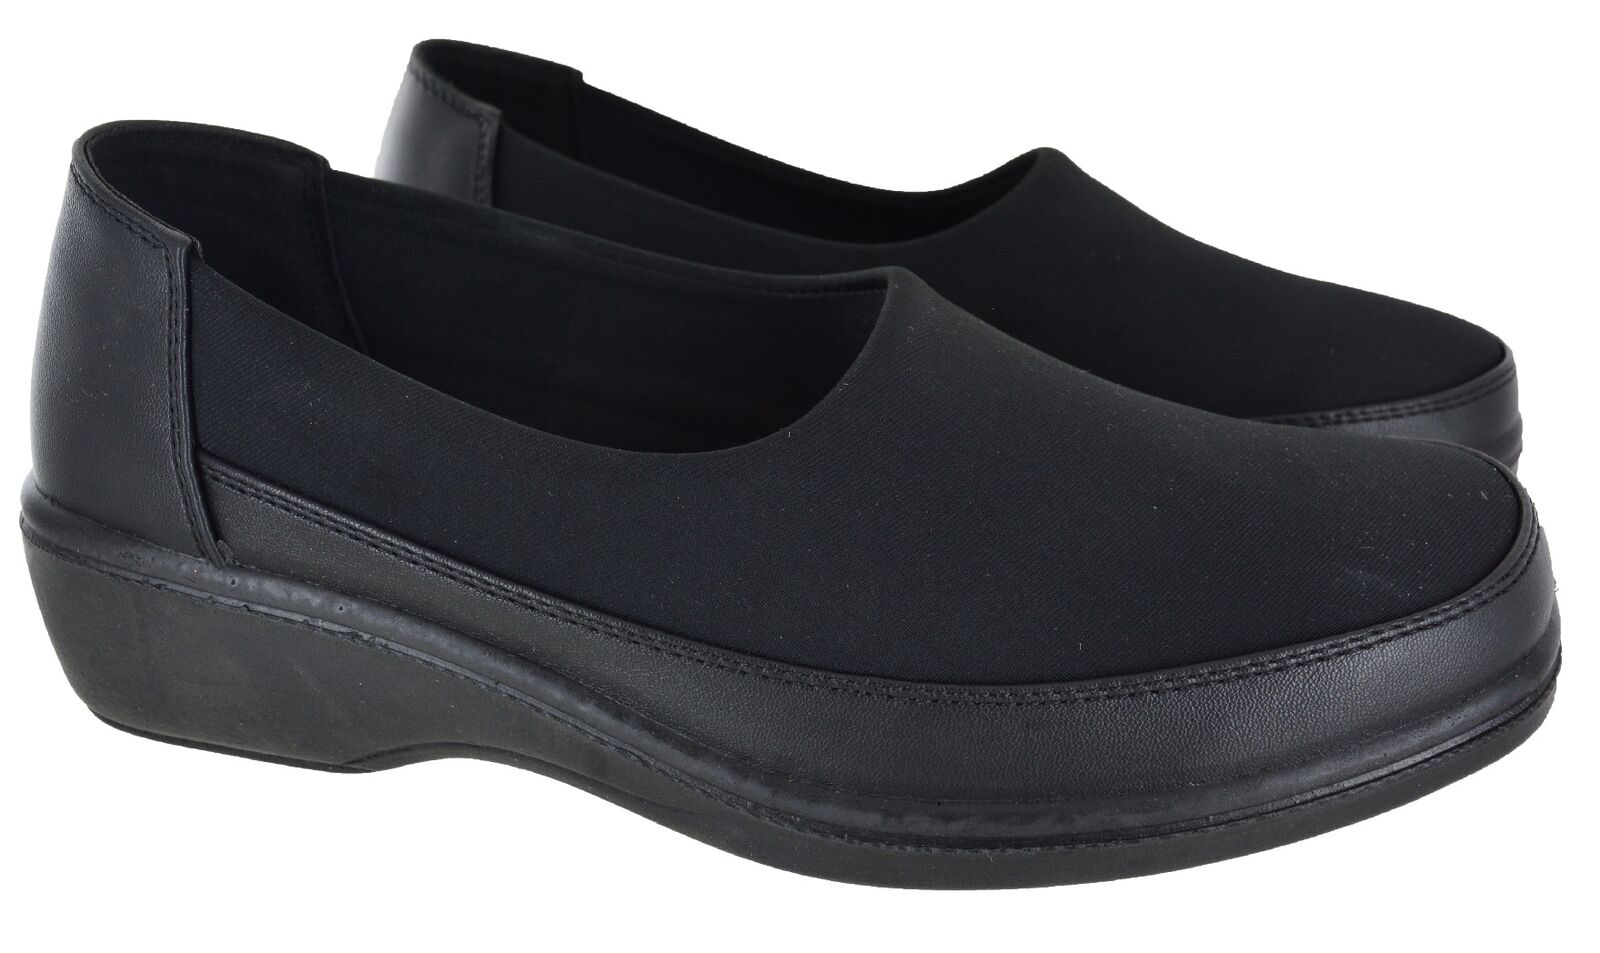 WOMENS LADIES WIDE FIT COMFORT CASUAL LOW HEEL FLAT WEDGE LOAFER SHOES SIZE 3-8